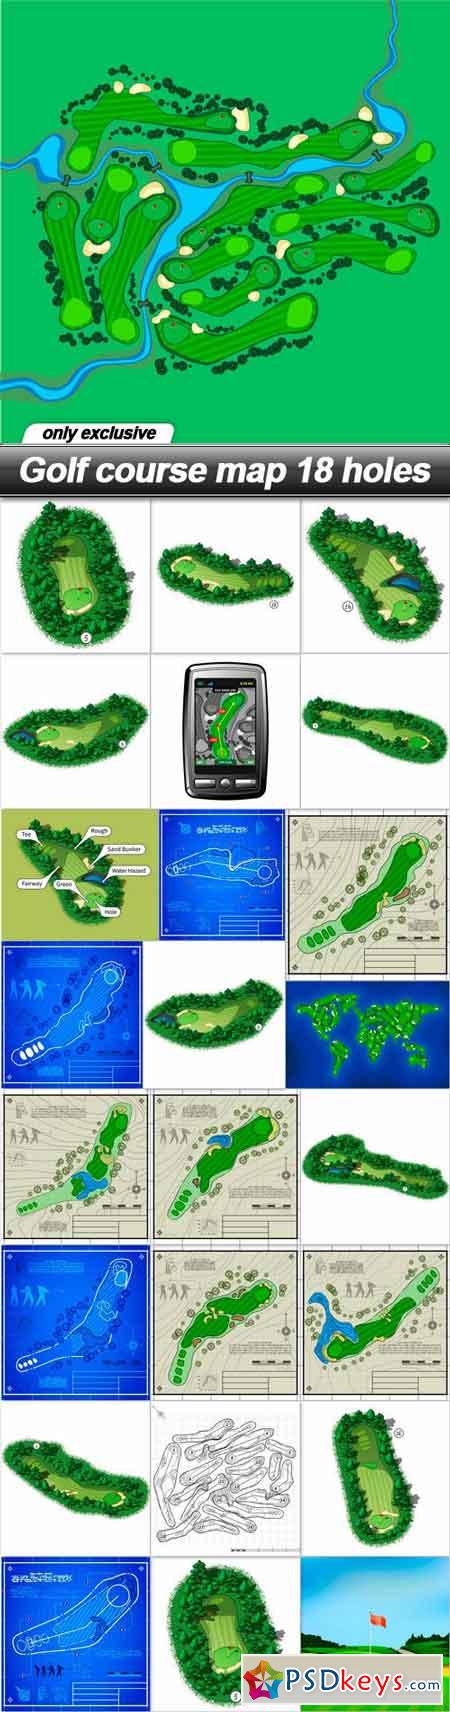 Map page 7 free download photoshop vector stock image via golf course map 18 holes 25 eps gumiabroncs Choice Image